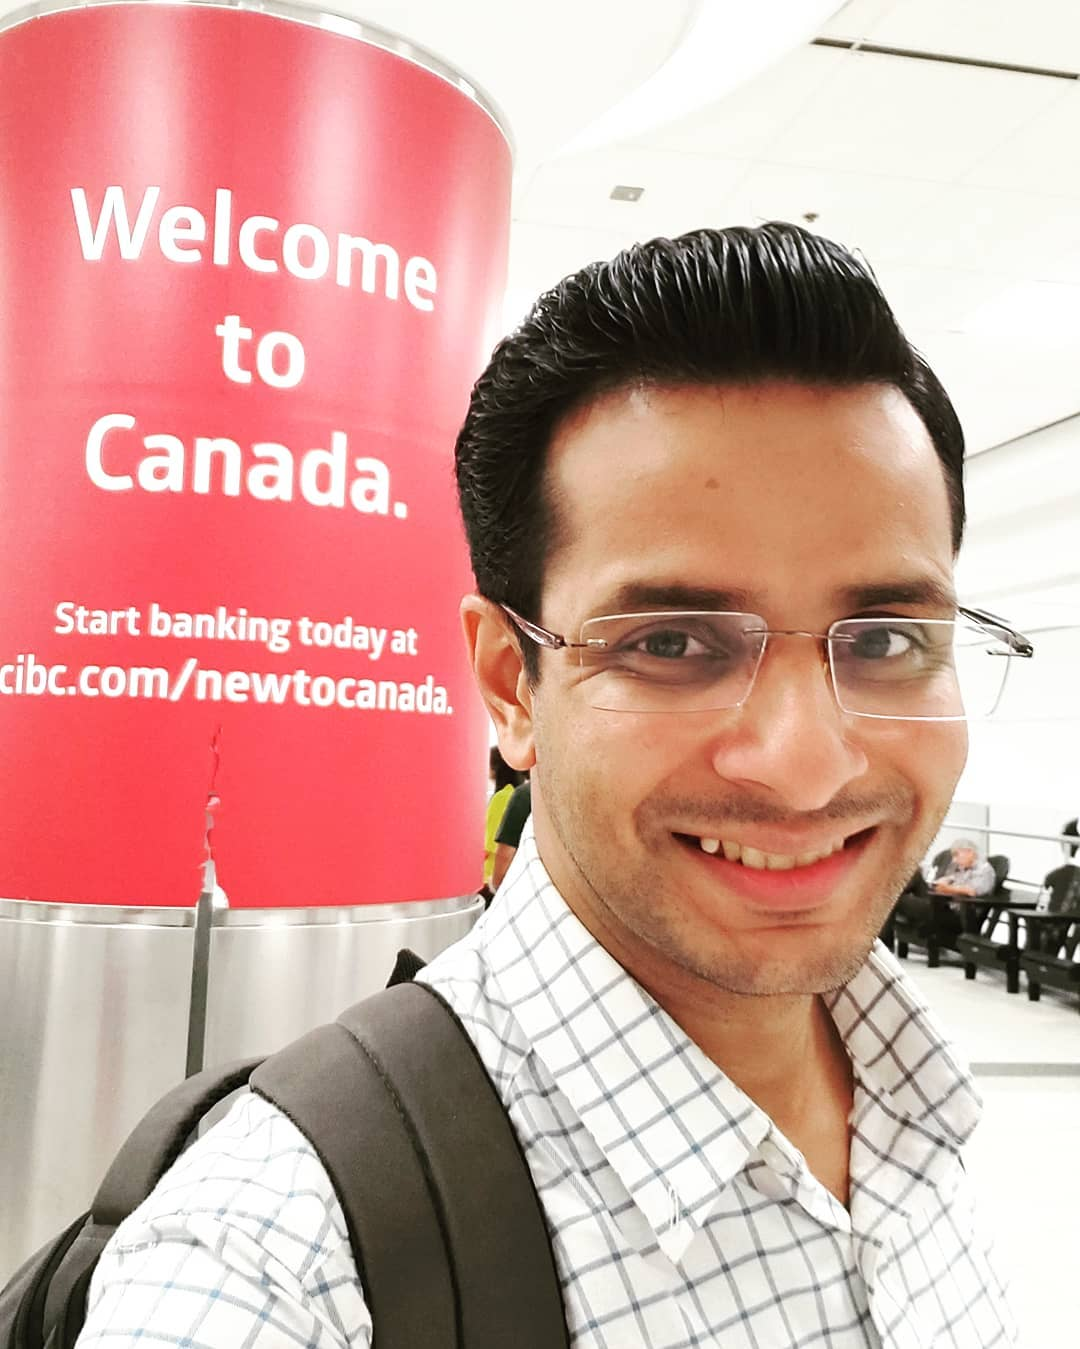 Ojas Rawal,  toronto, canada, play, OjasRawal, actor, traveldiaries, globetrotter, traveling, funtimes, smile, selfie, ilovecanada, seetheworld, globalcitizen, ojas, travellifestyle, explorer, wanderer, wanderlust, ohcanada, canadian, airport, newbeginnings, adventure, tour, travel, trip, tourism, actorlife, happyme